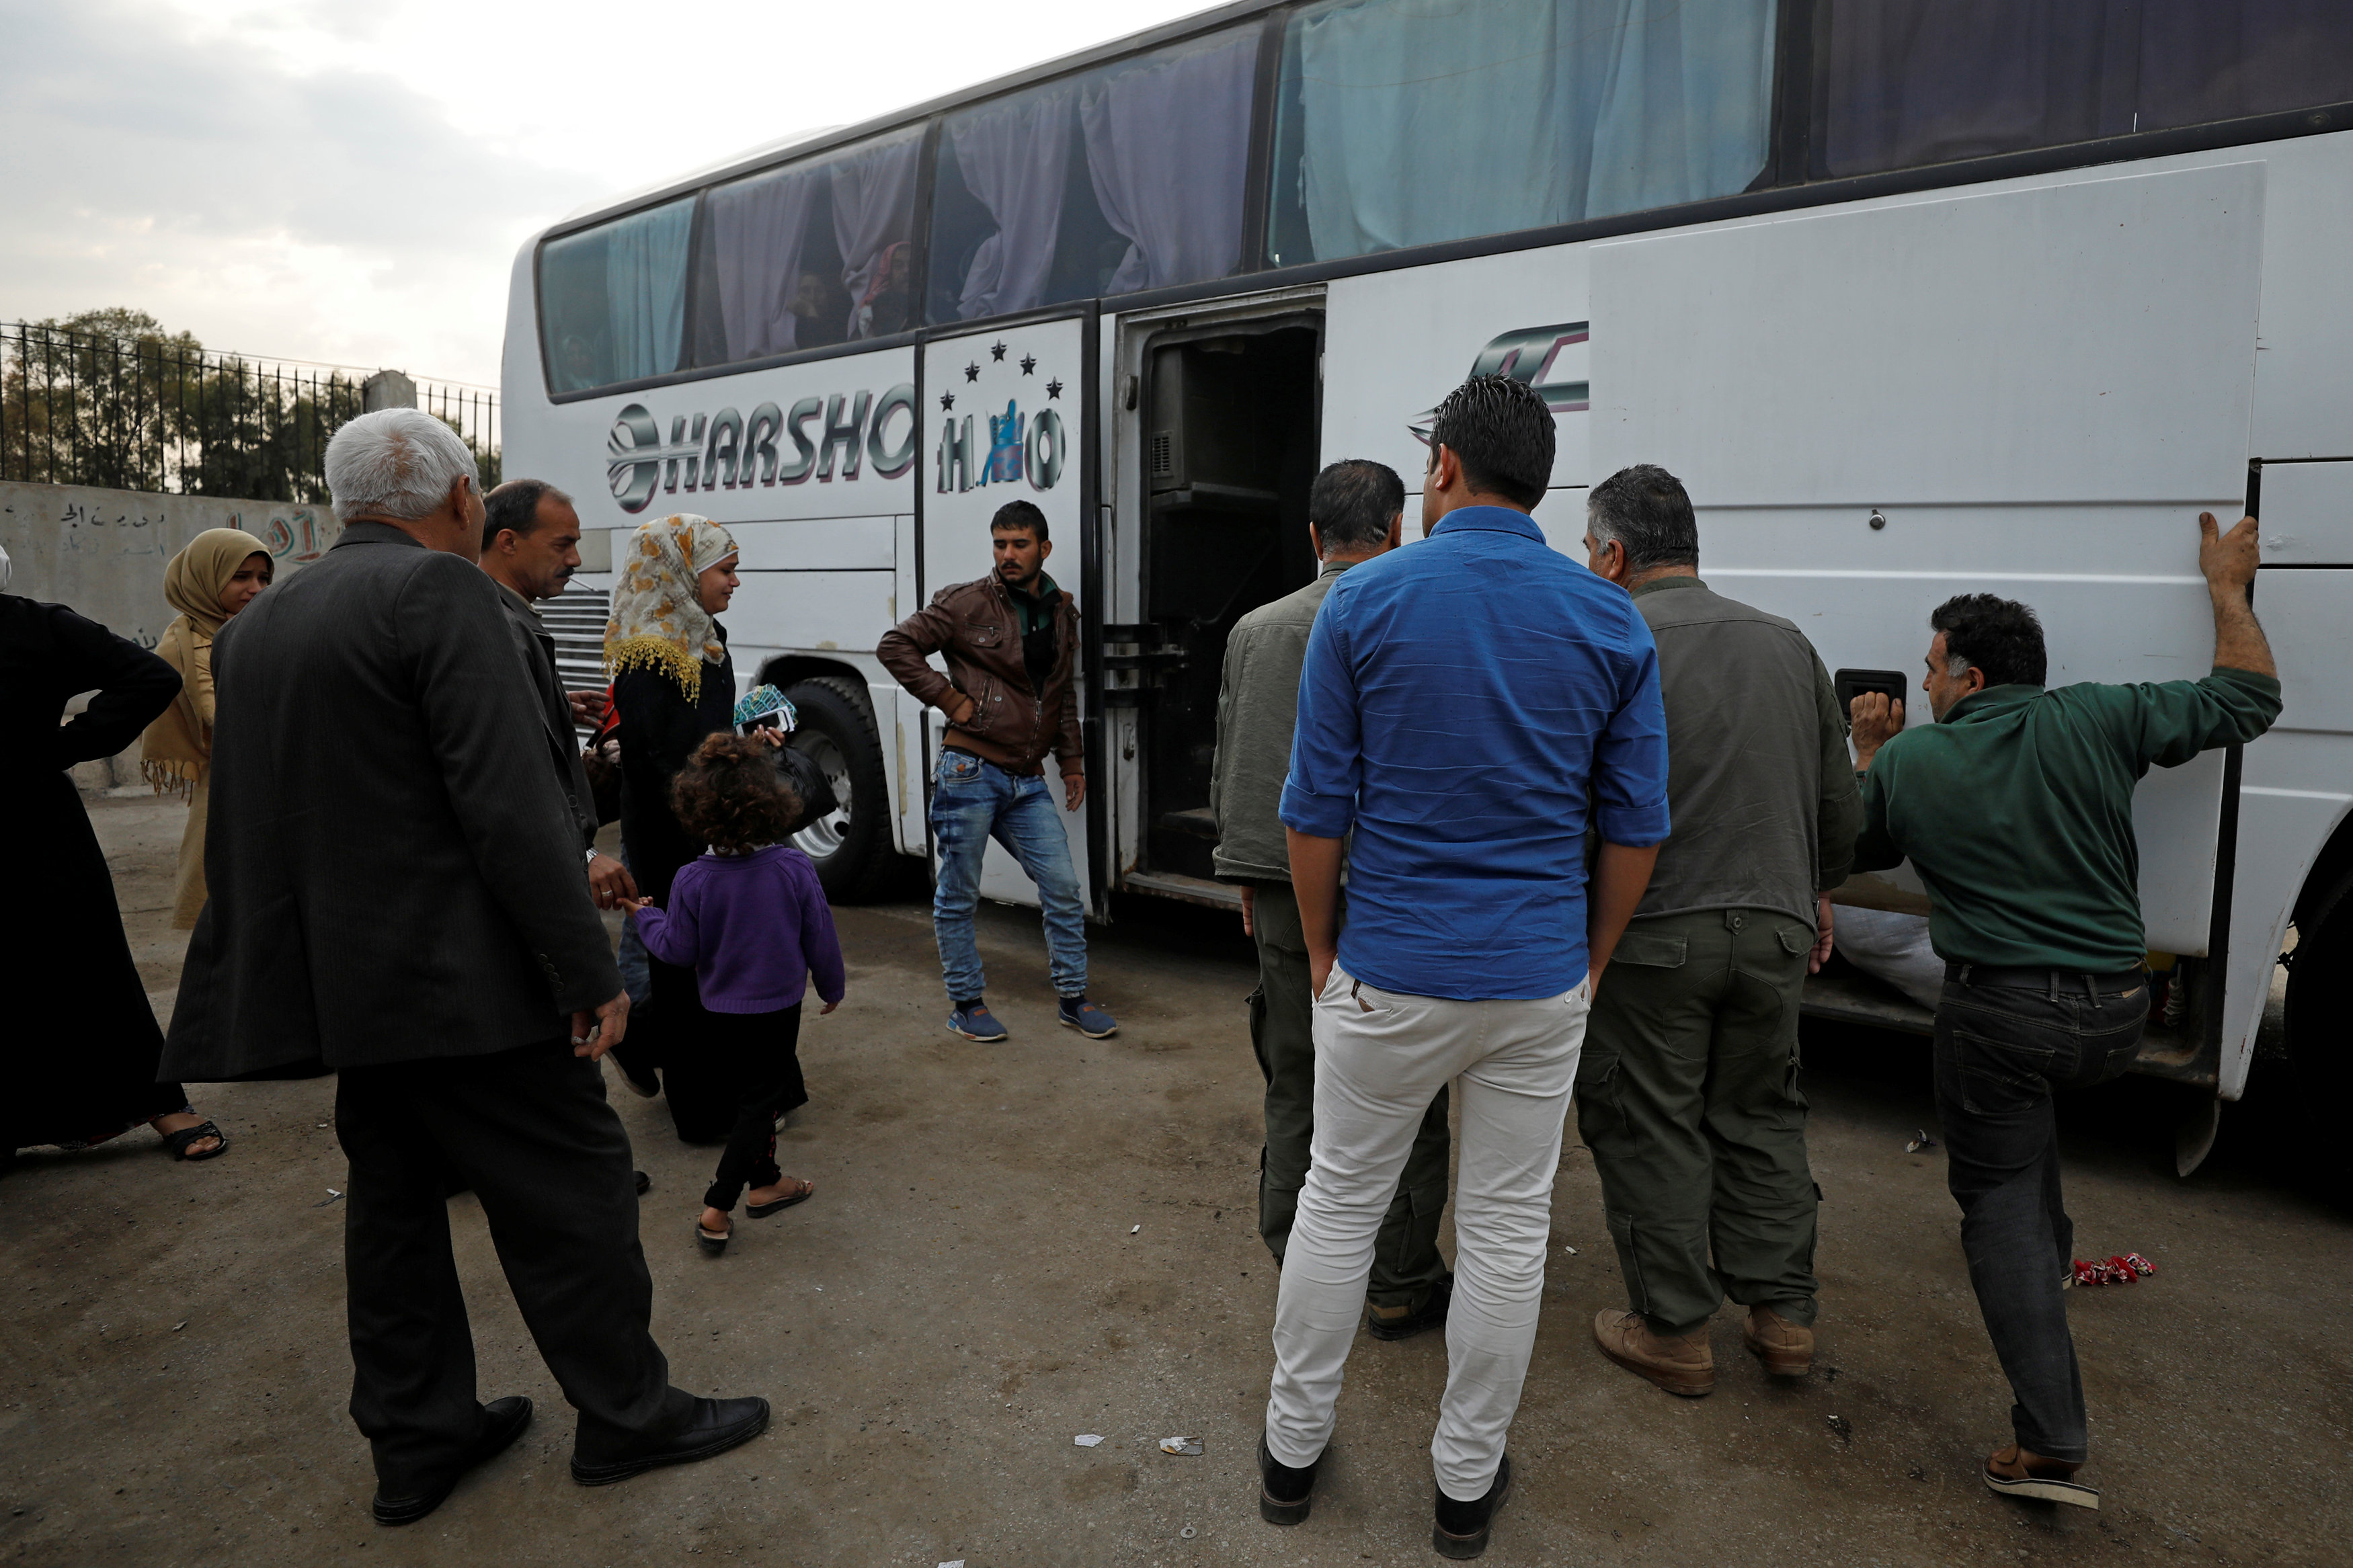 Passengers wait in Qamishli city in Syria's Kurdish-held northeast to embark on a bus headed for government-controlled Aleppo, Syria May 7, 2017. REUTERS/Rodi Said